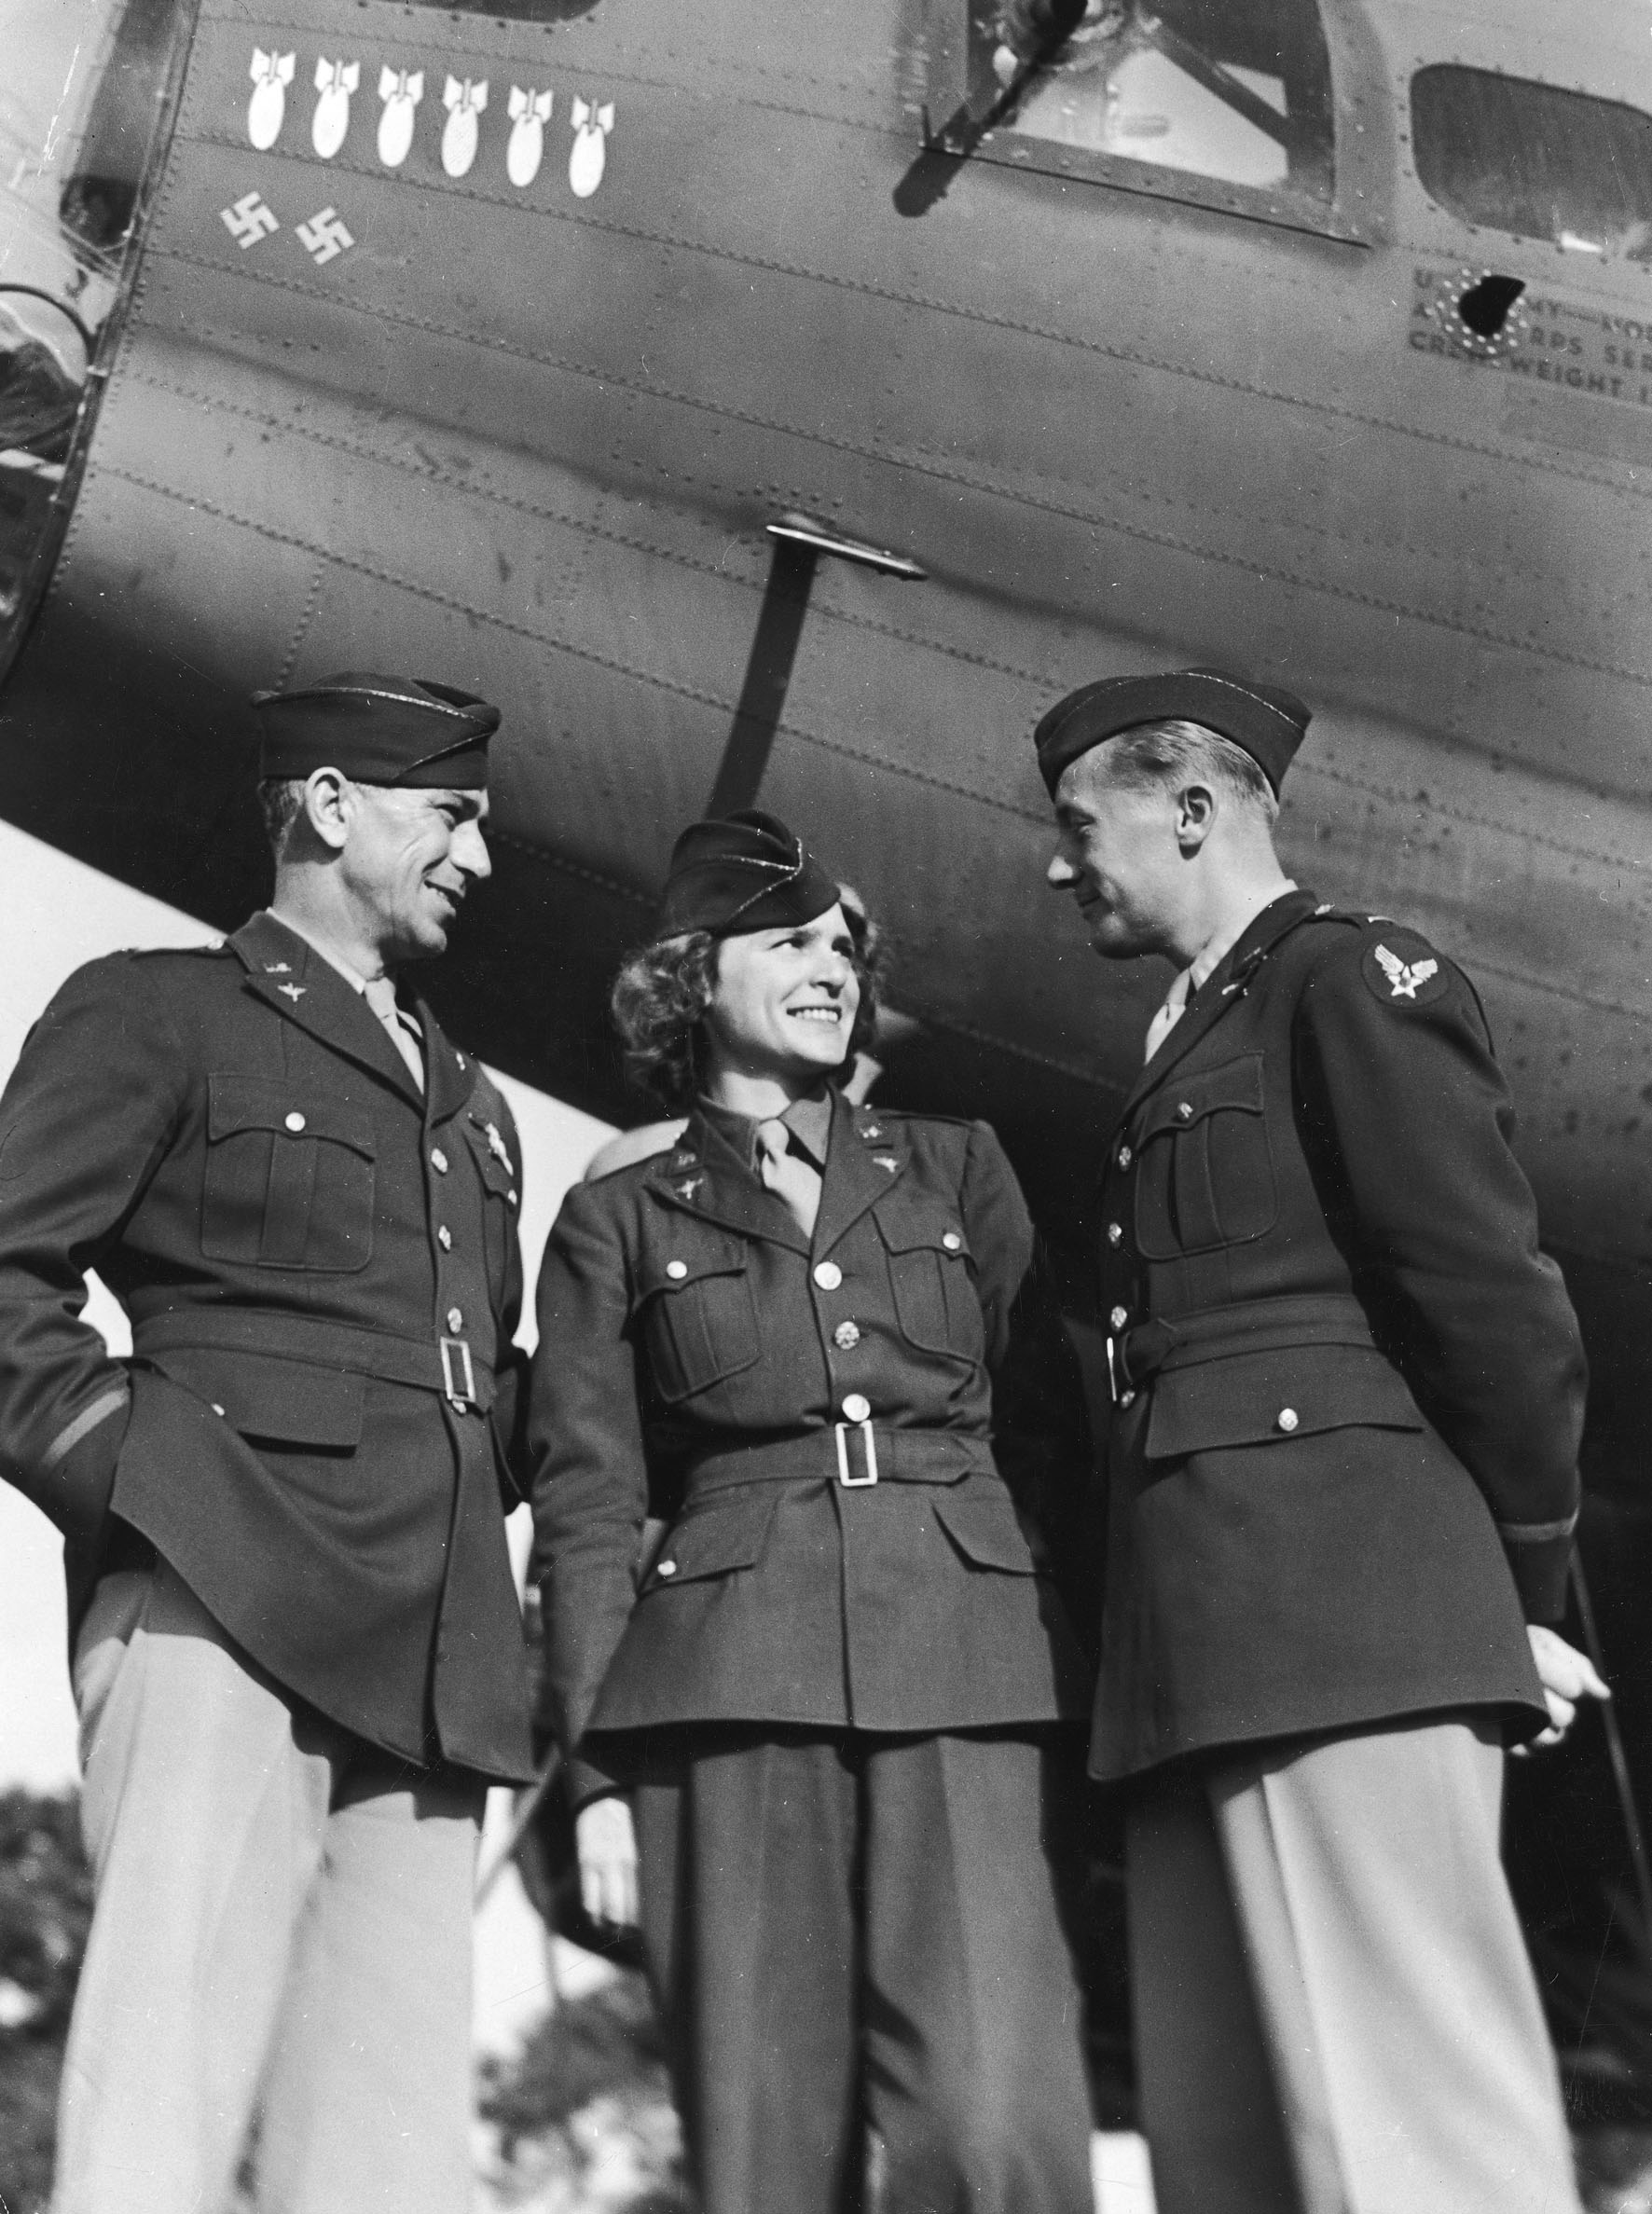 Margaret Bourke-White in an Air Force uniform with officers of the 8th Bomber Command